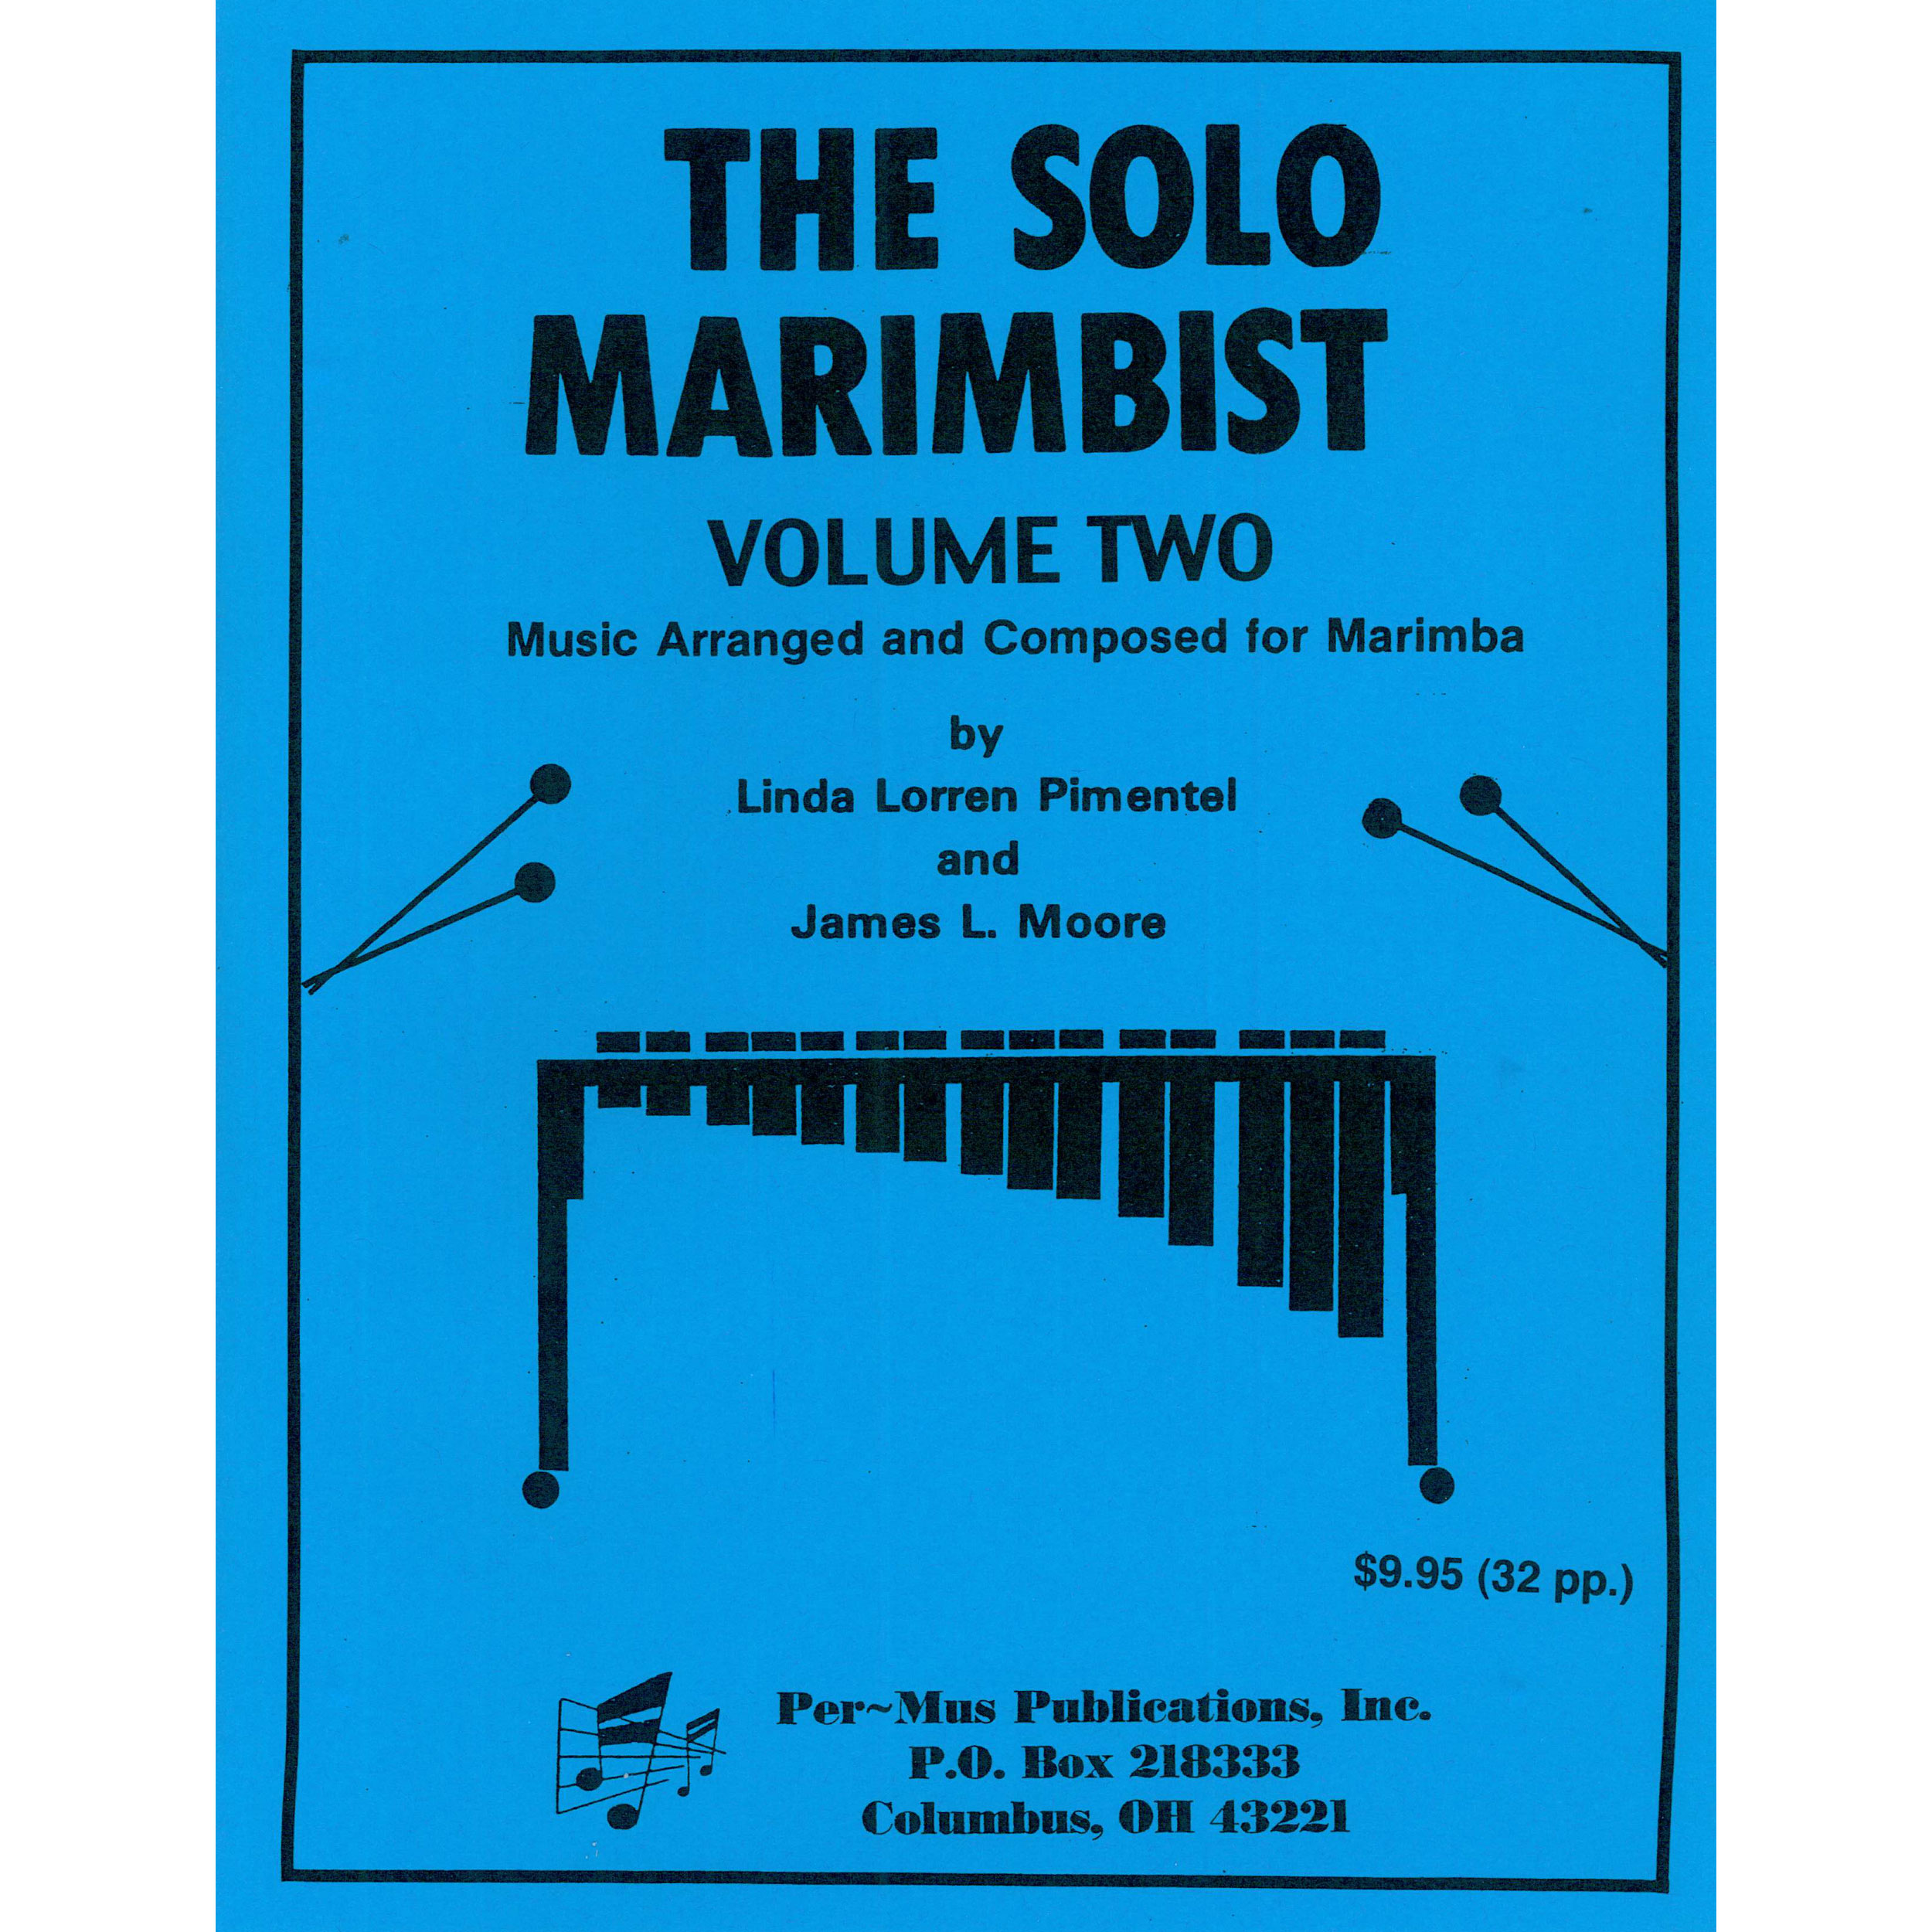 The Solo Marimbist Vol. 2 by Linda Pimentel & James Moore